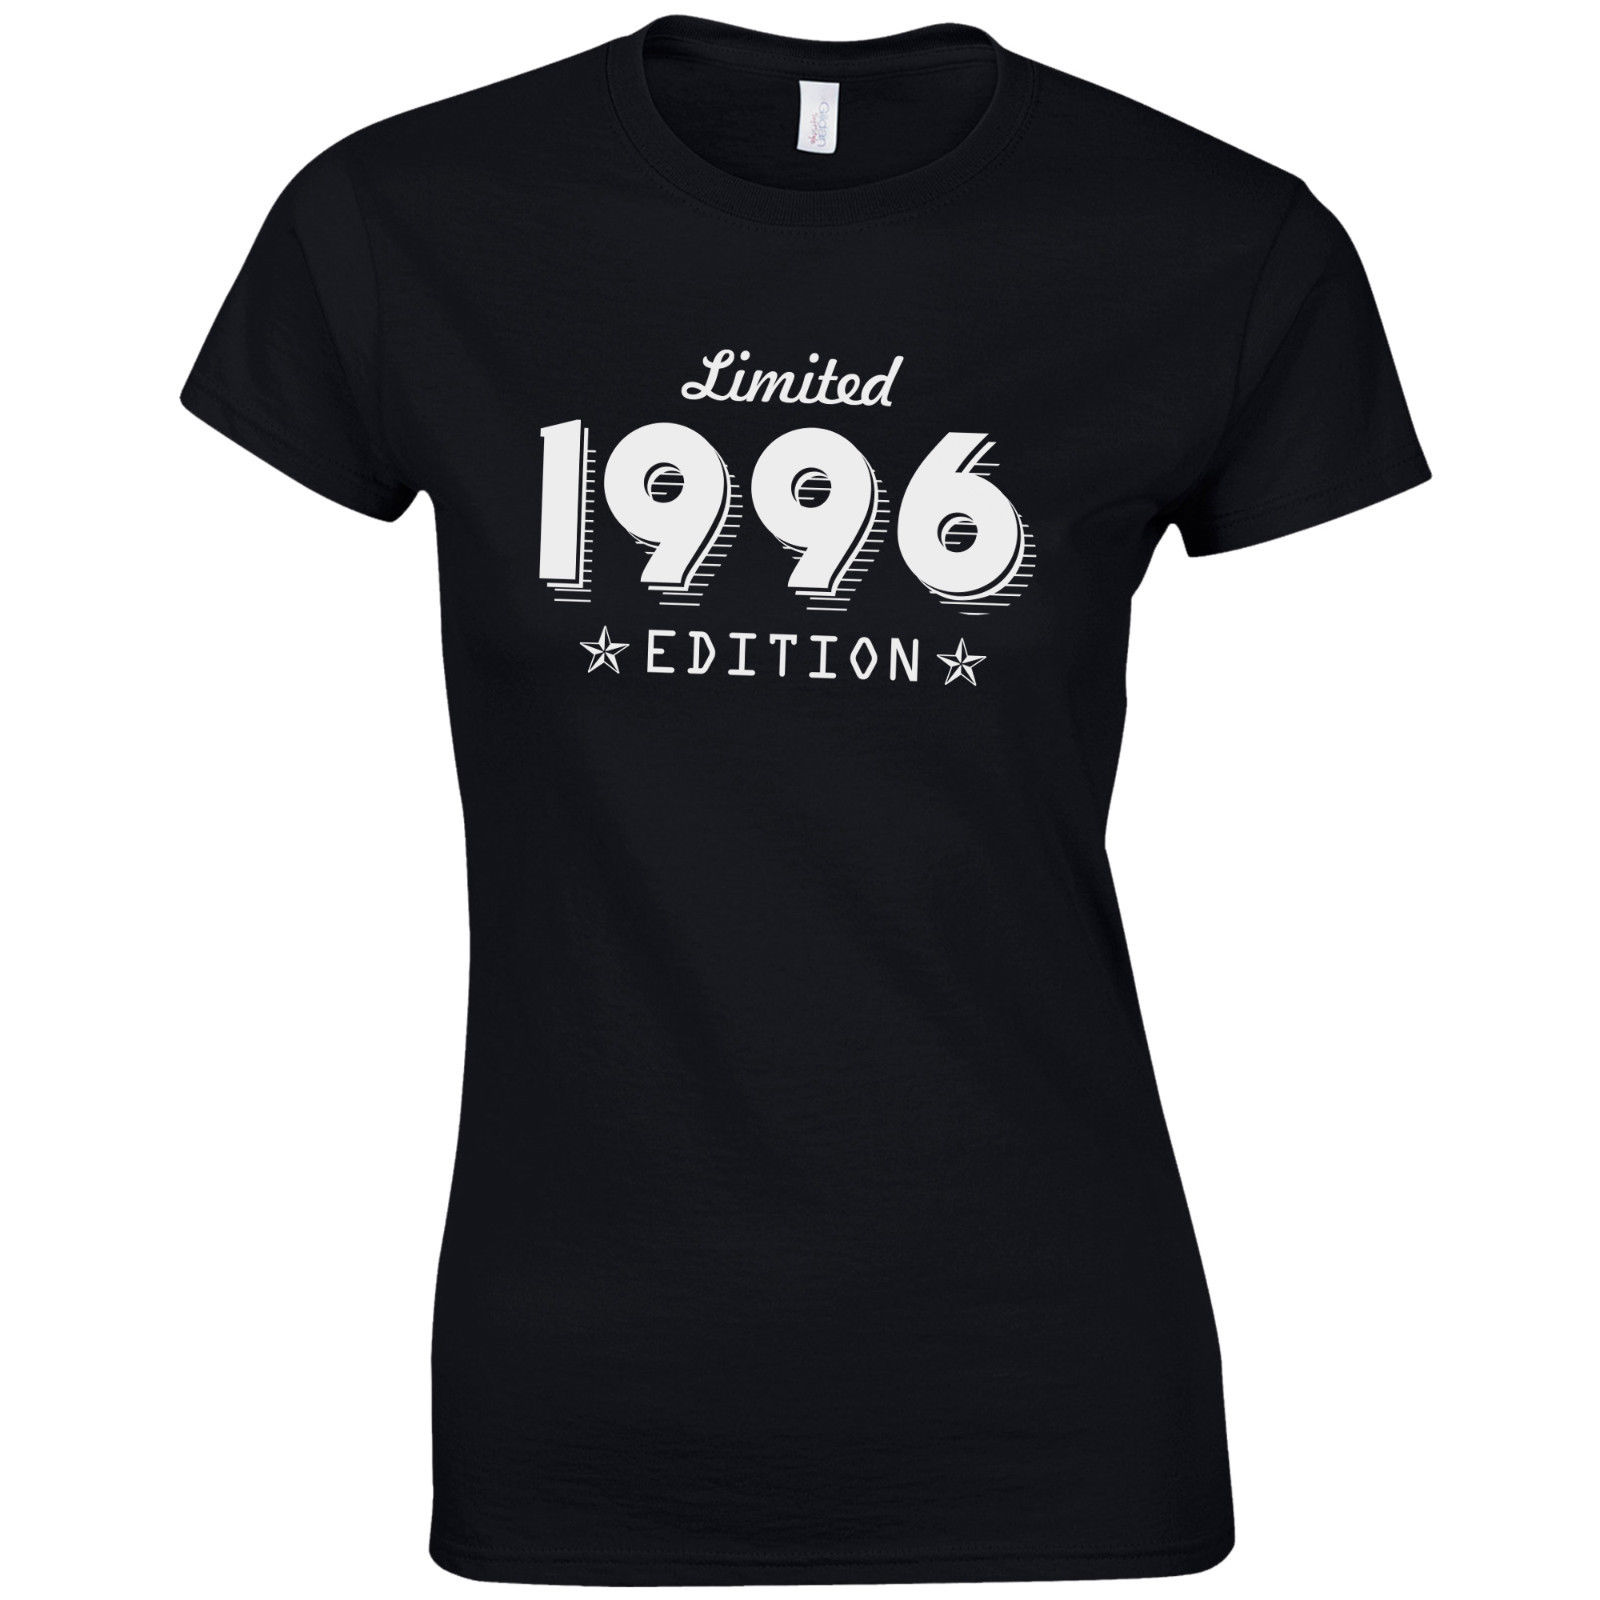 T shirt quotes short sleeve graphic o neck limited edition 1996 fitted born 21st year